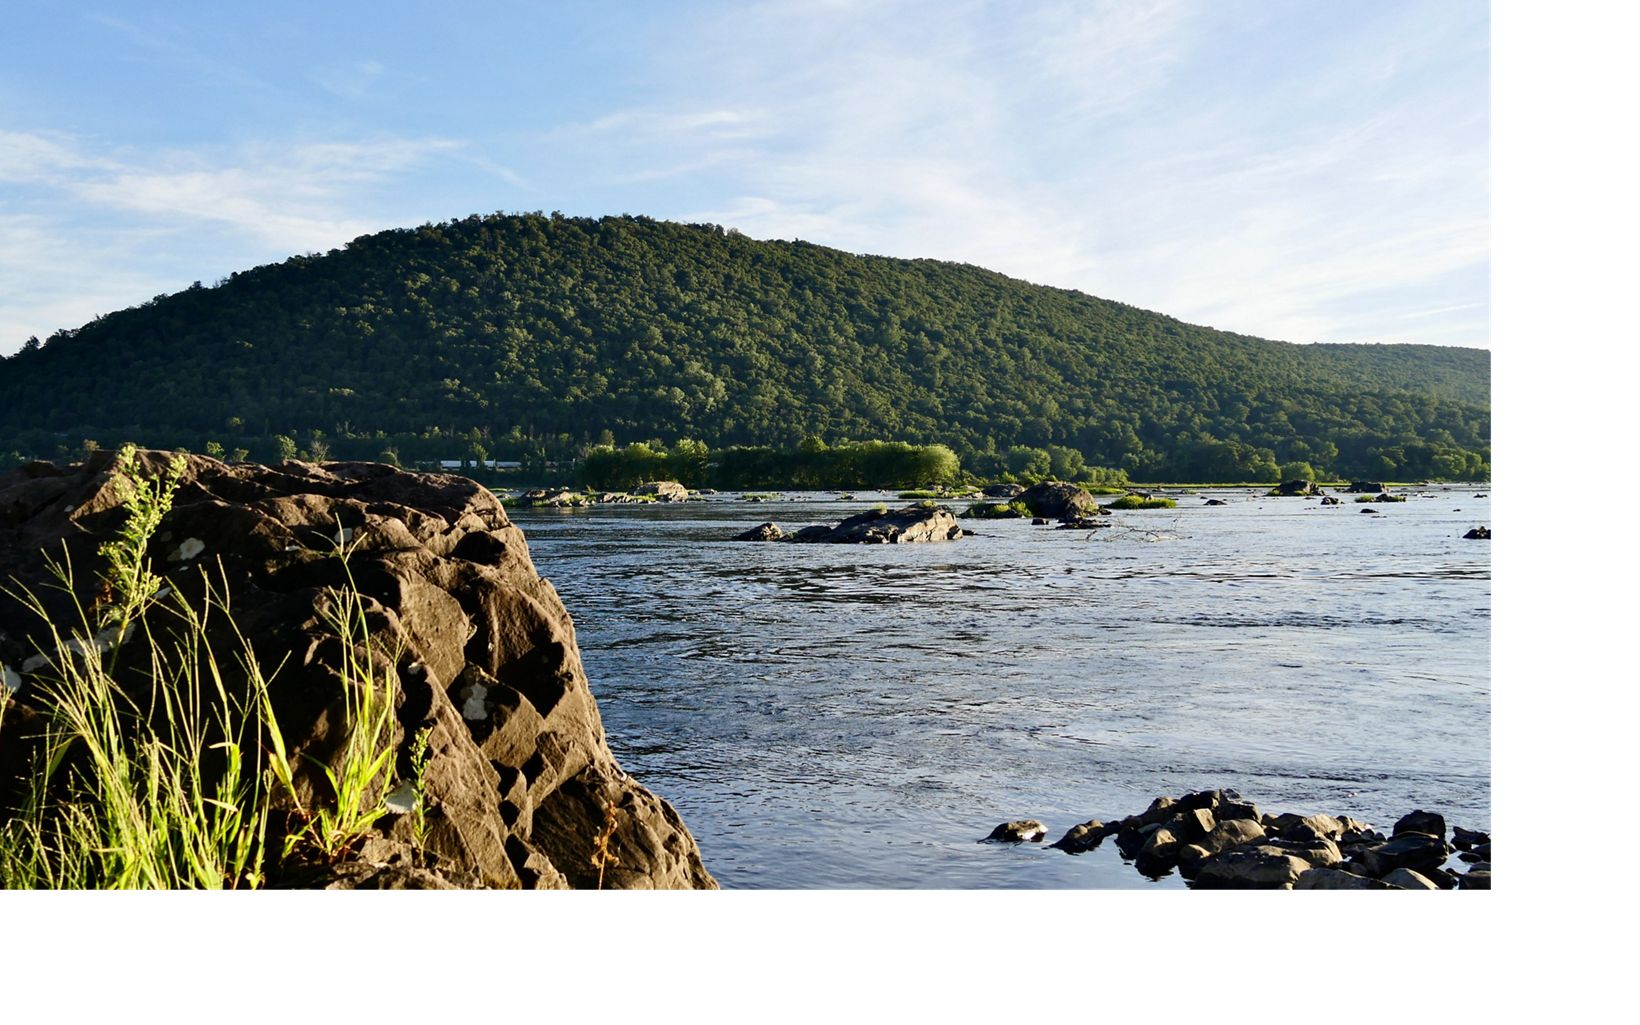 View of Cove Mountain from the east bank of the Susquehanna River. A large boulder is in the foreground. There are ripples on the surface of the water.